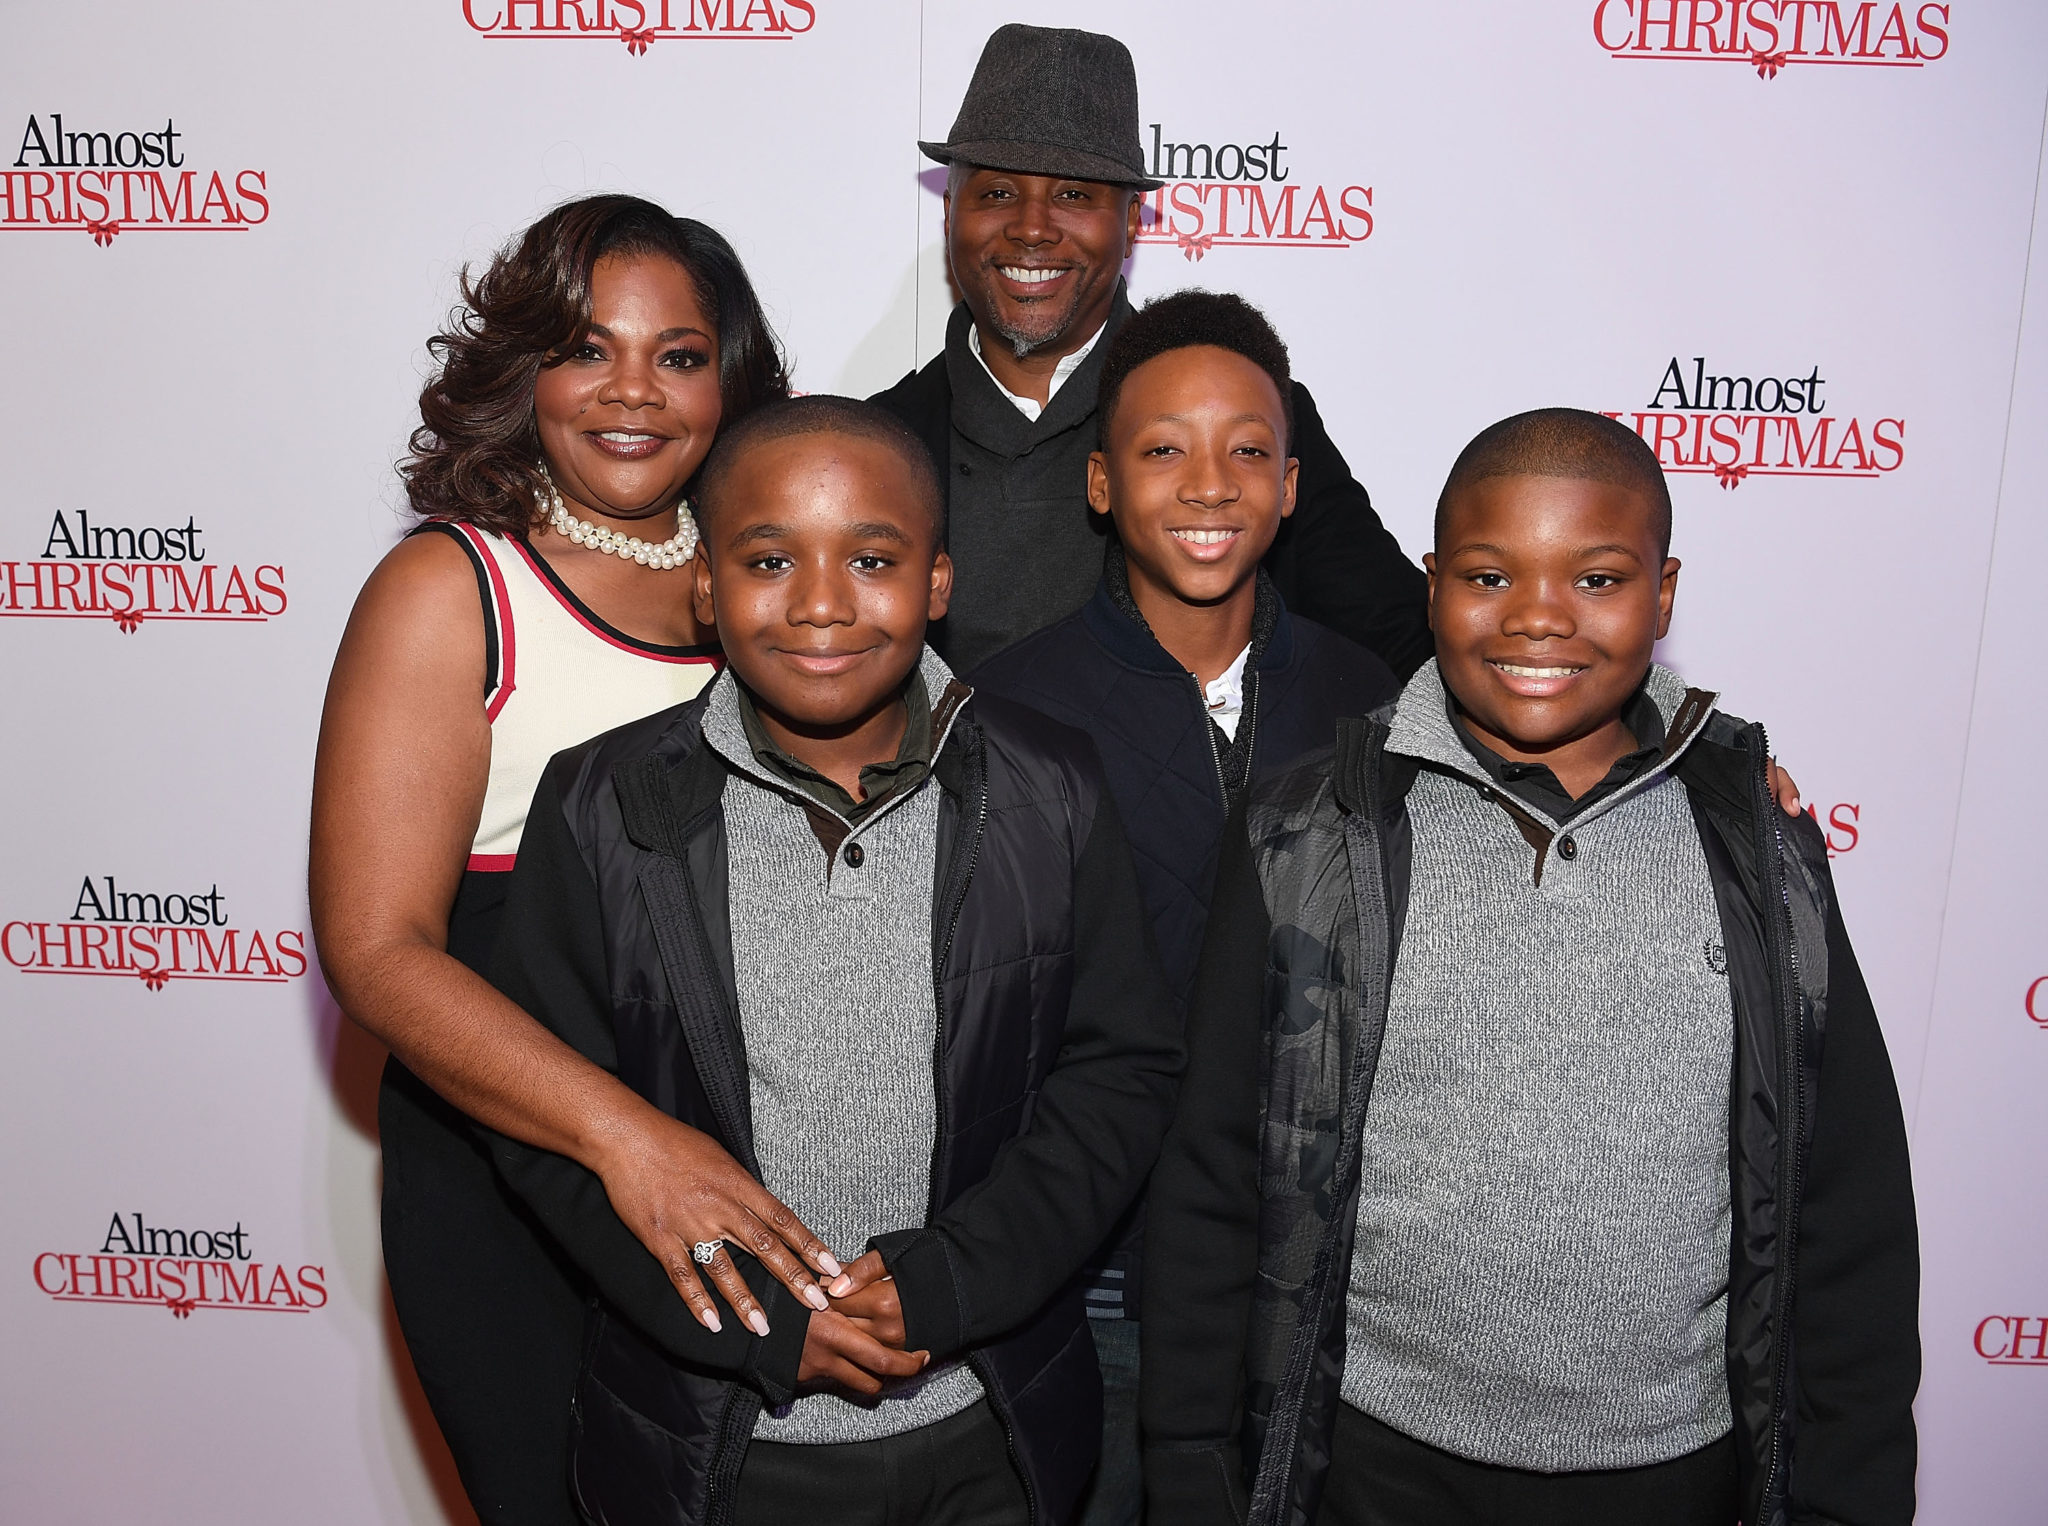 Cast From Almost Christmas.Almost Christmas Atlanta Red Carpet Screening Talking